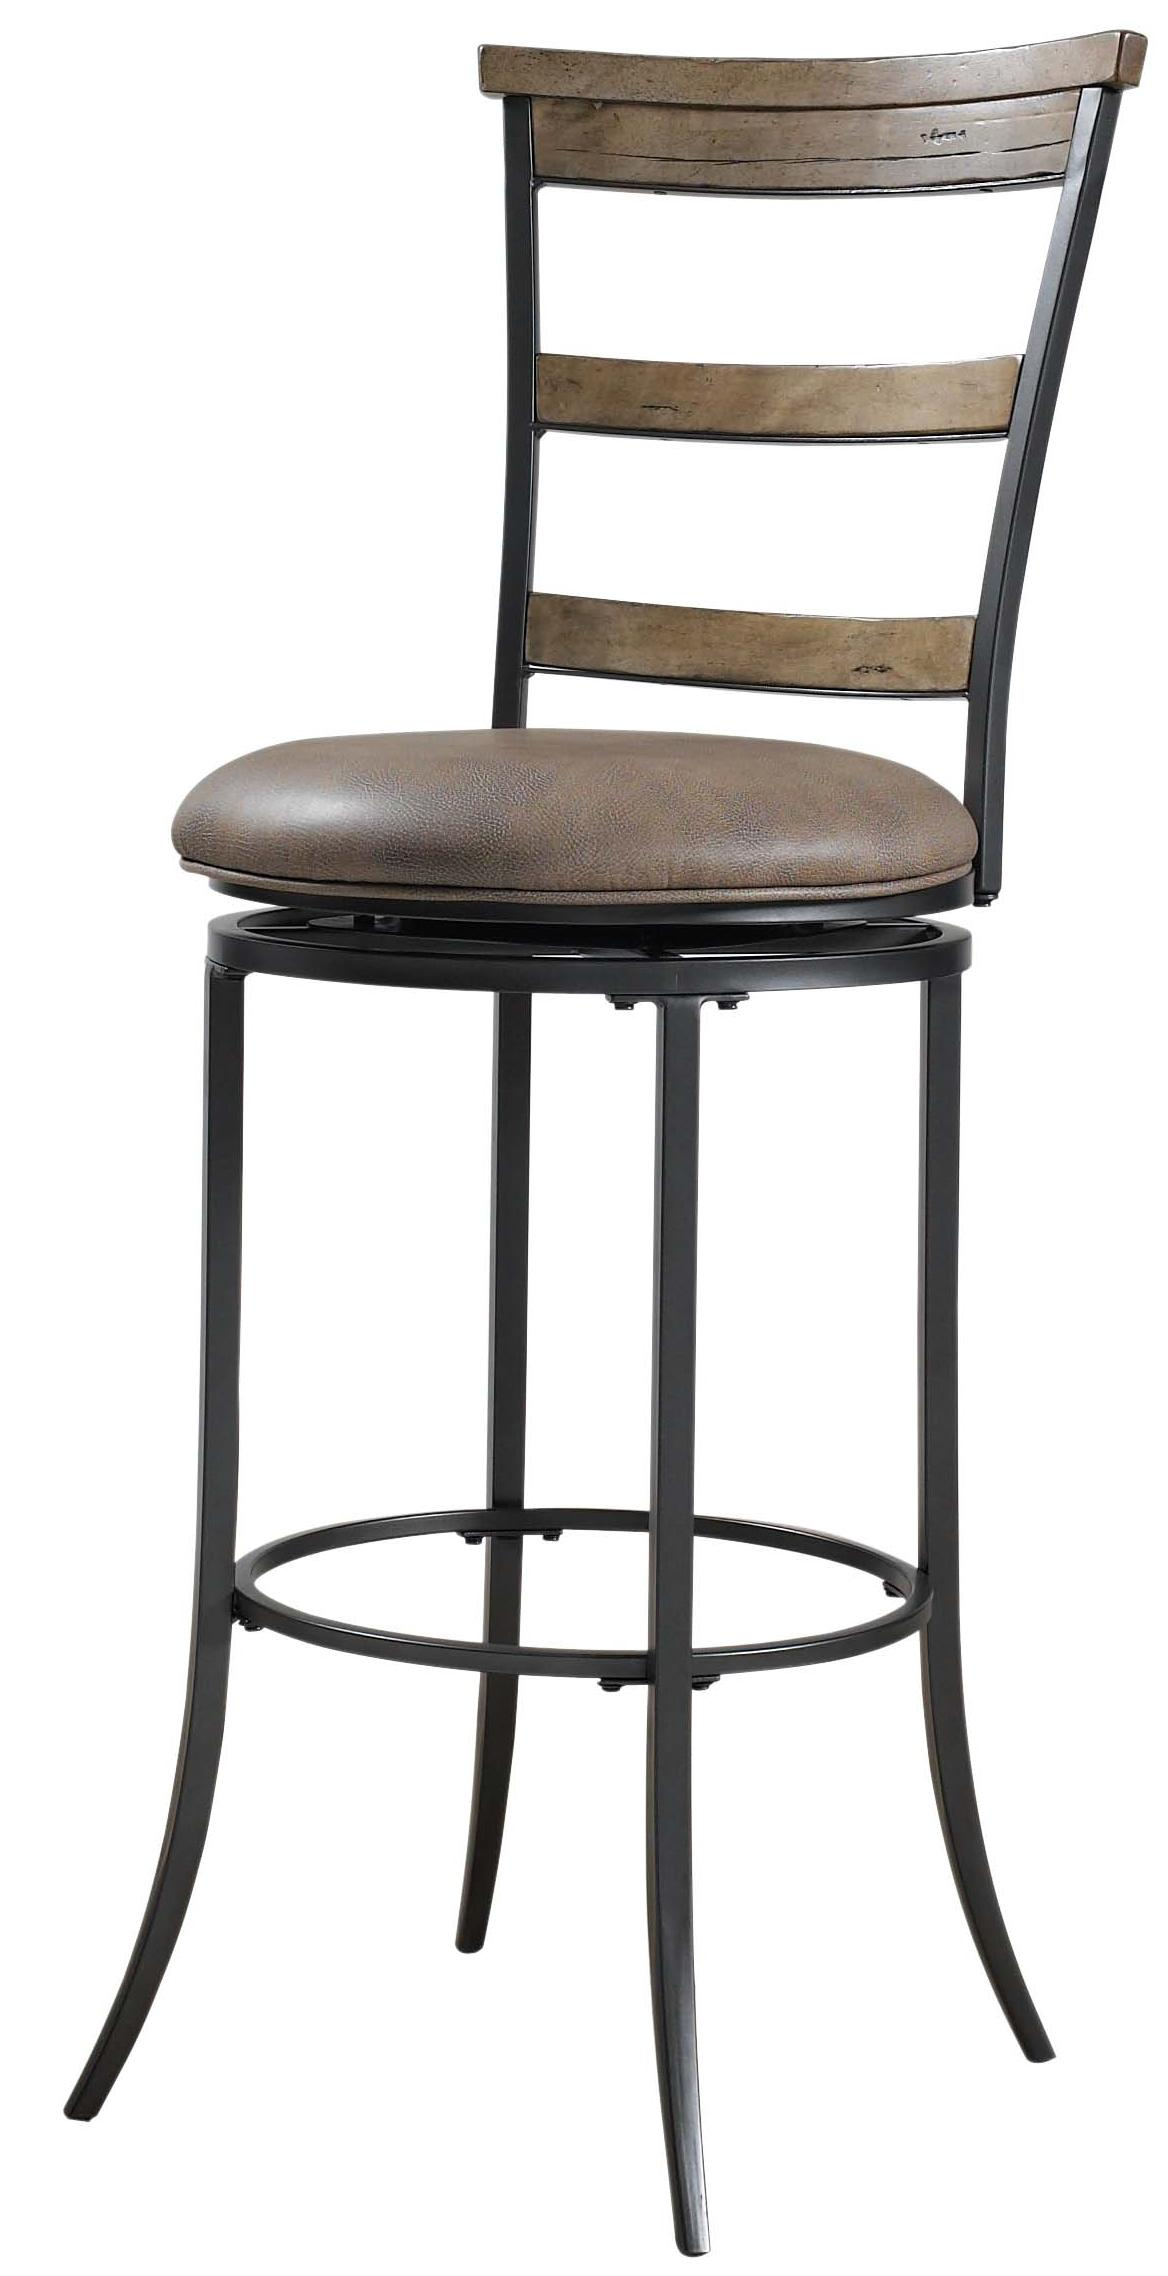 Charleston Swivel Ladder Back Bar Stool By Hillsdale